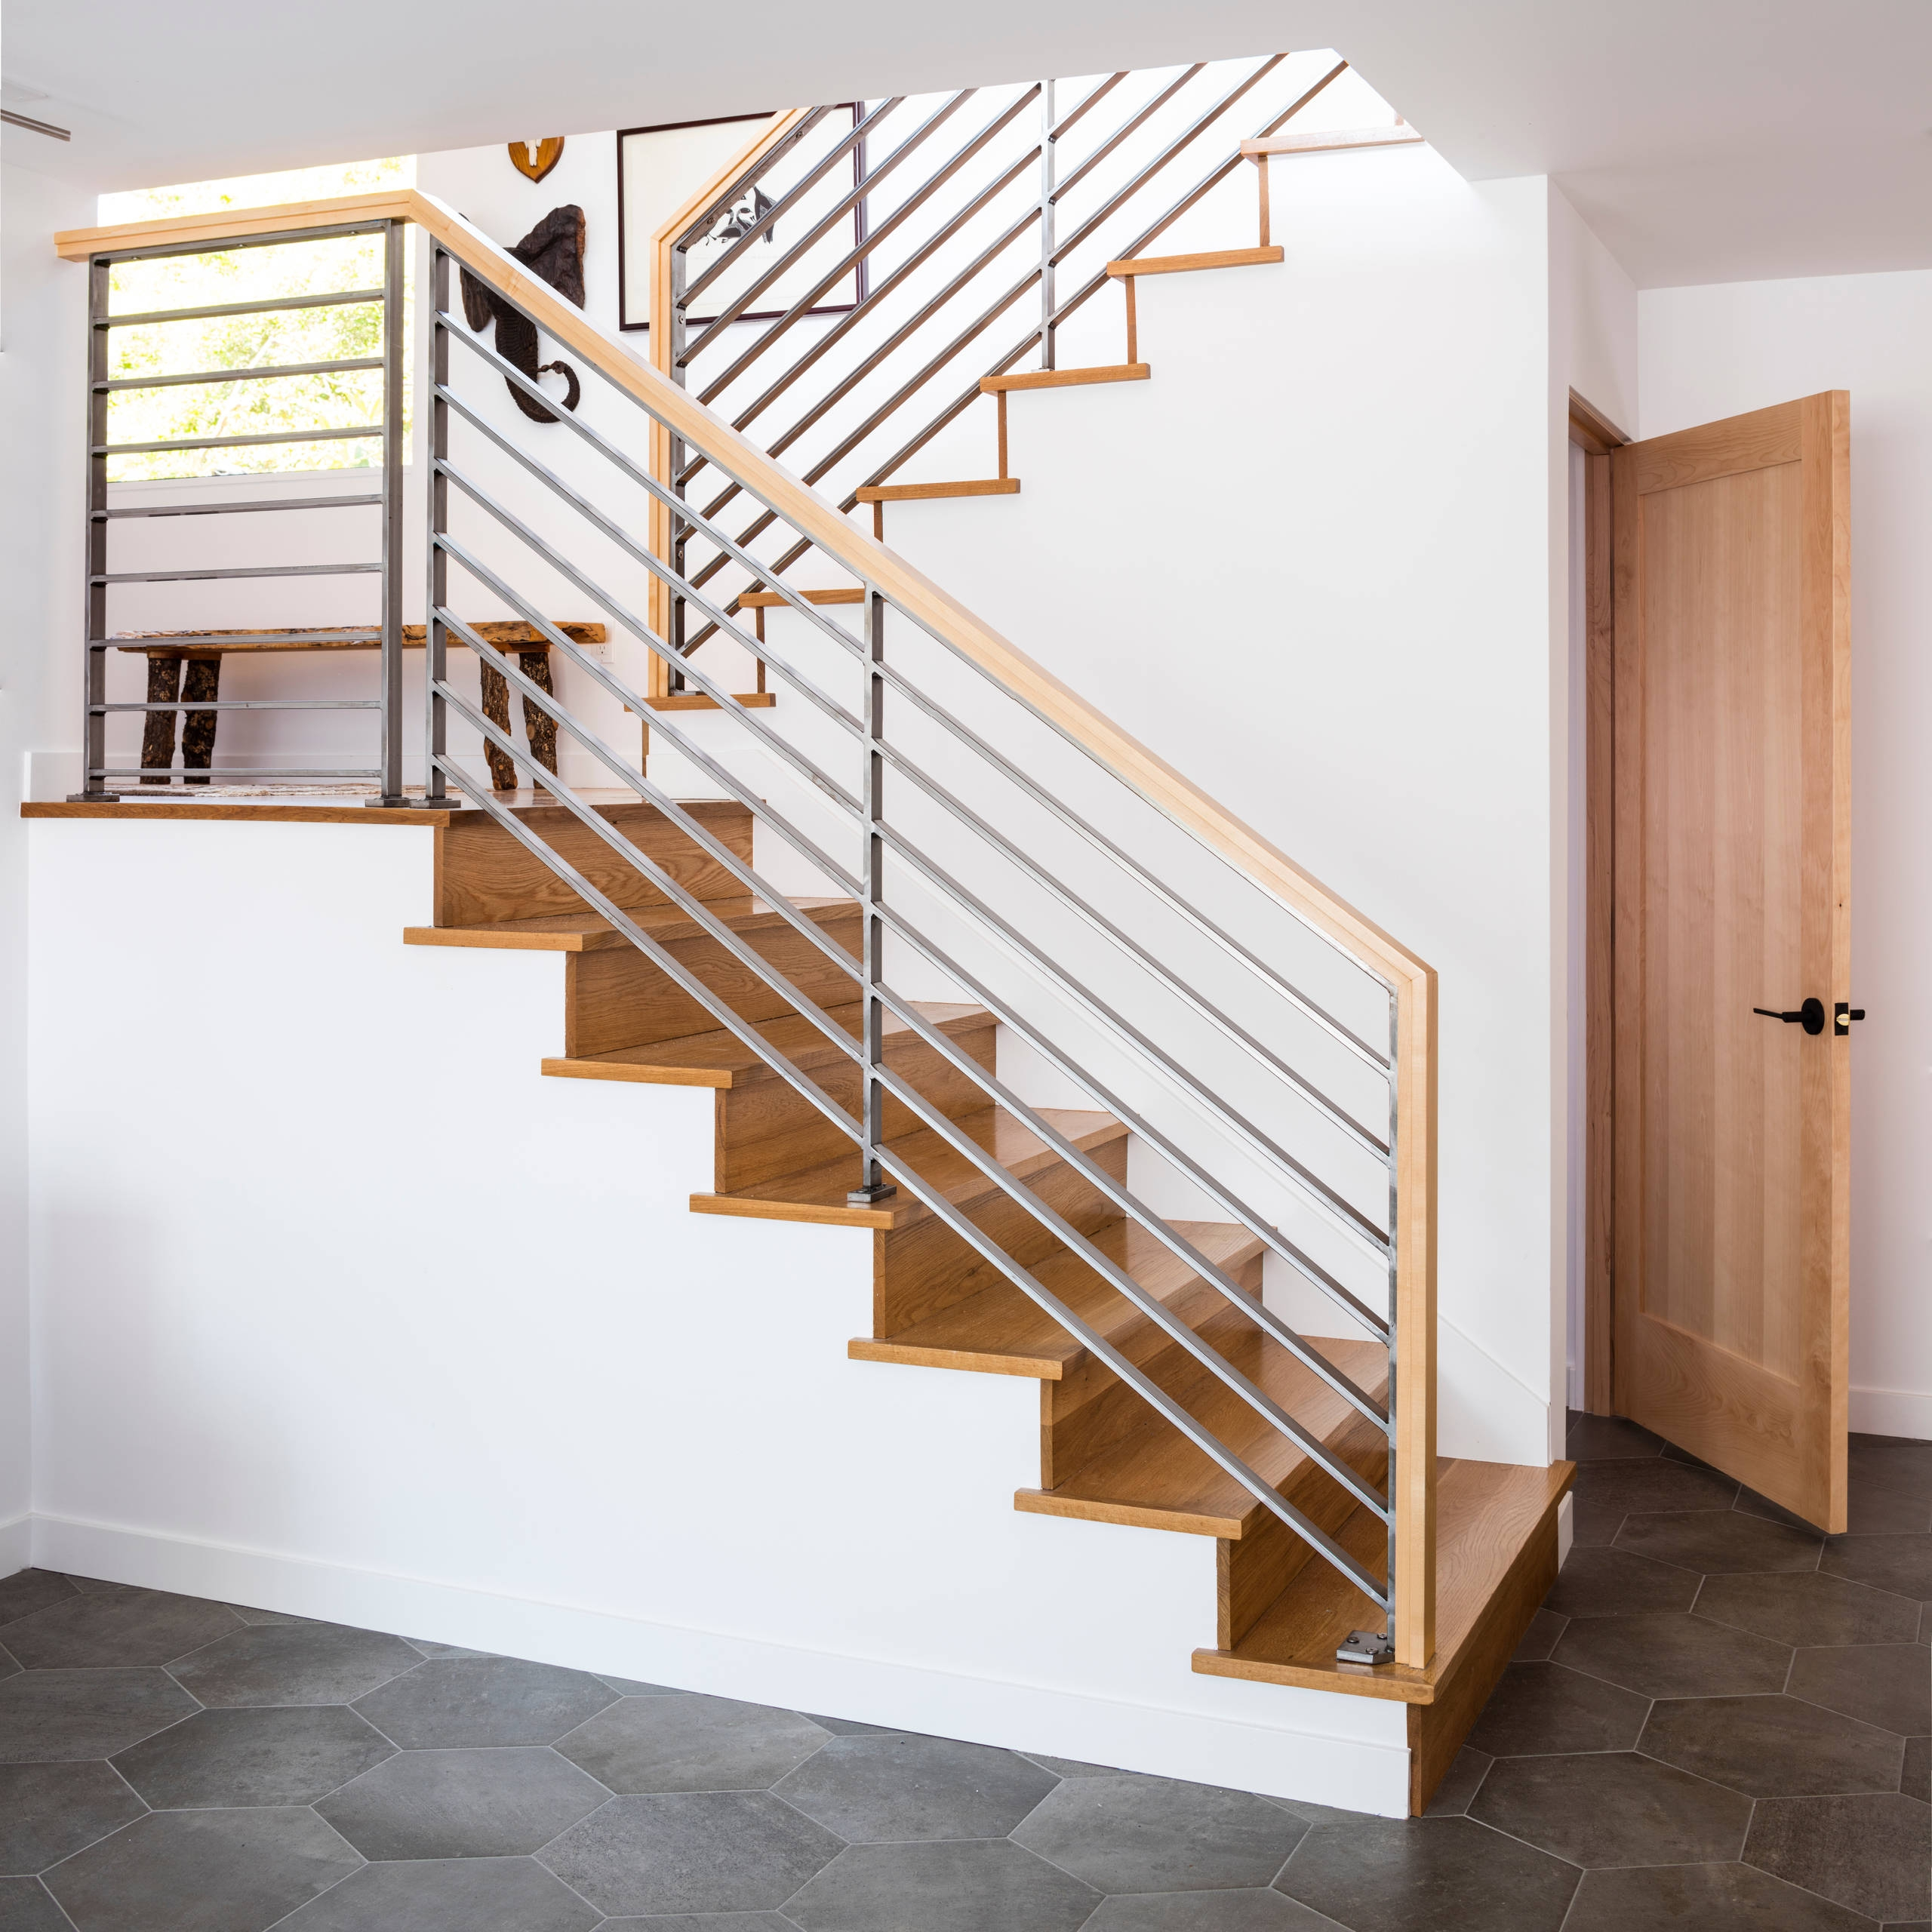 75 Beautiful Mid Century Modern Staircase Pictures Ideas | Mid Century Modern Stair Handrail | Vertical | Decorative | Fixer Up | Living Room | Contemporary Curved Staircase